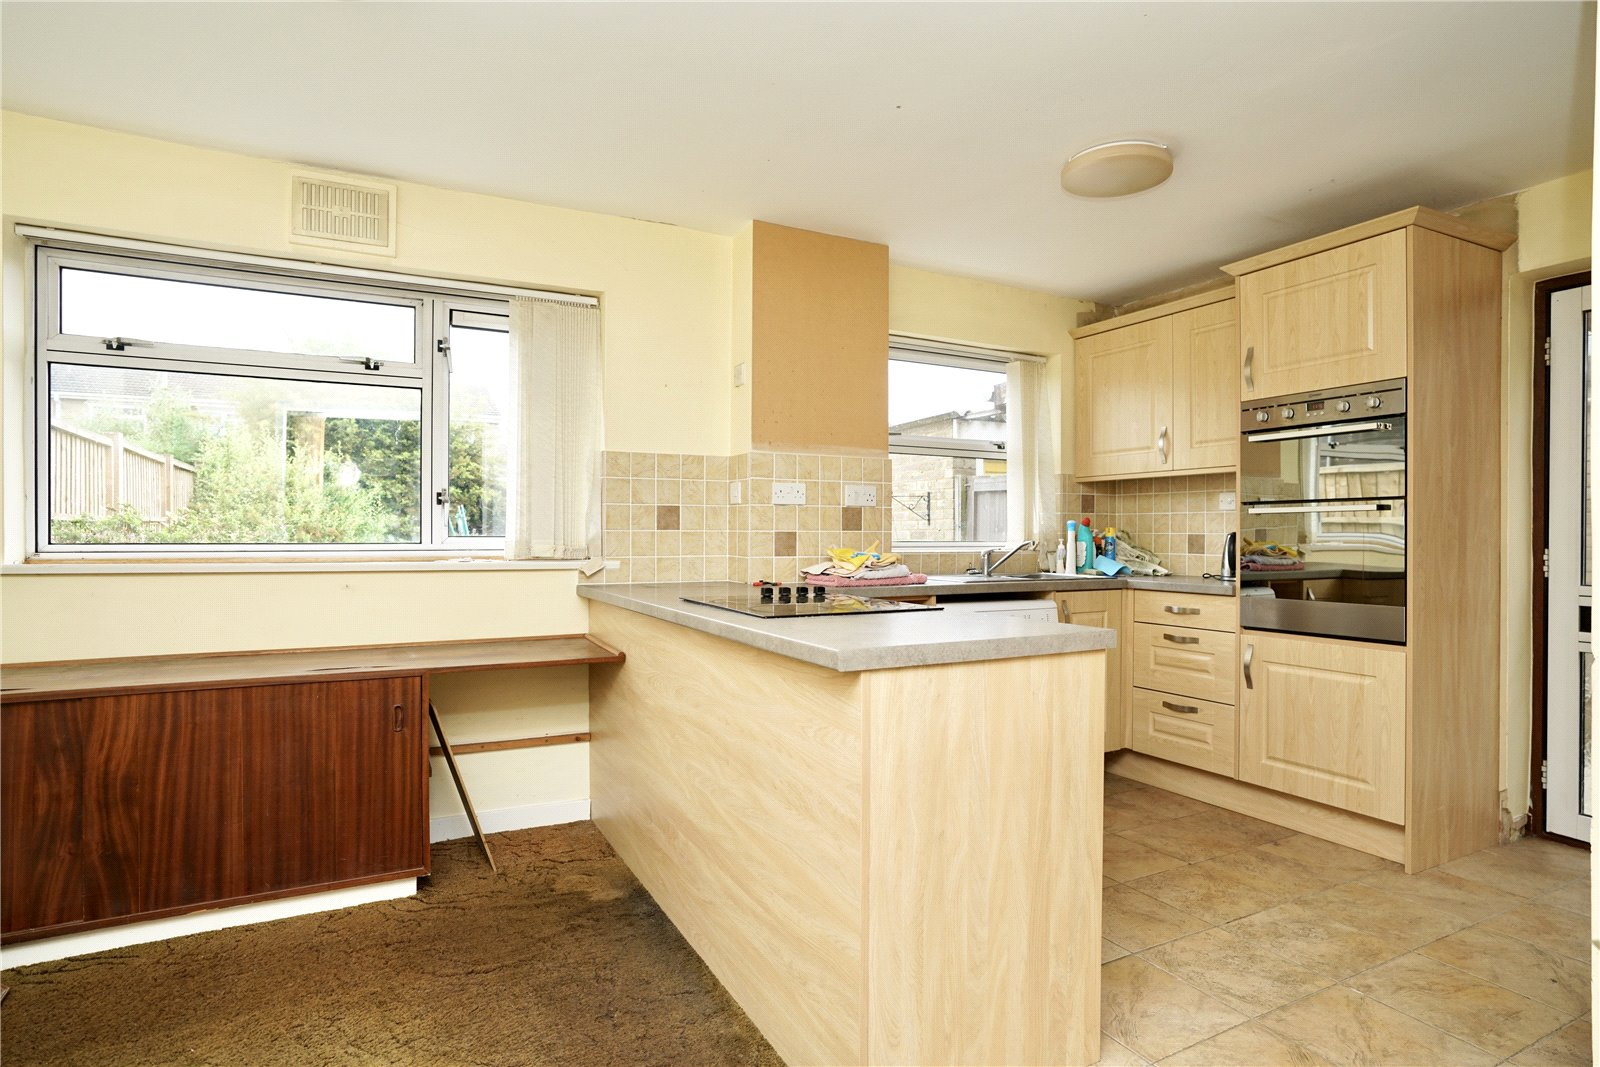 3 bed house for sale in Kenilworth Close, Eaton Socon  - Property Image 2